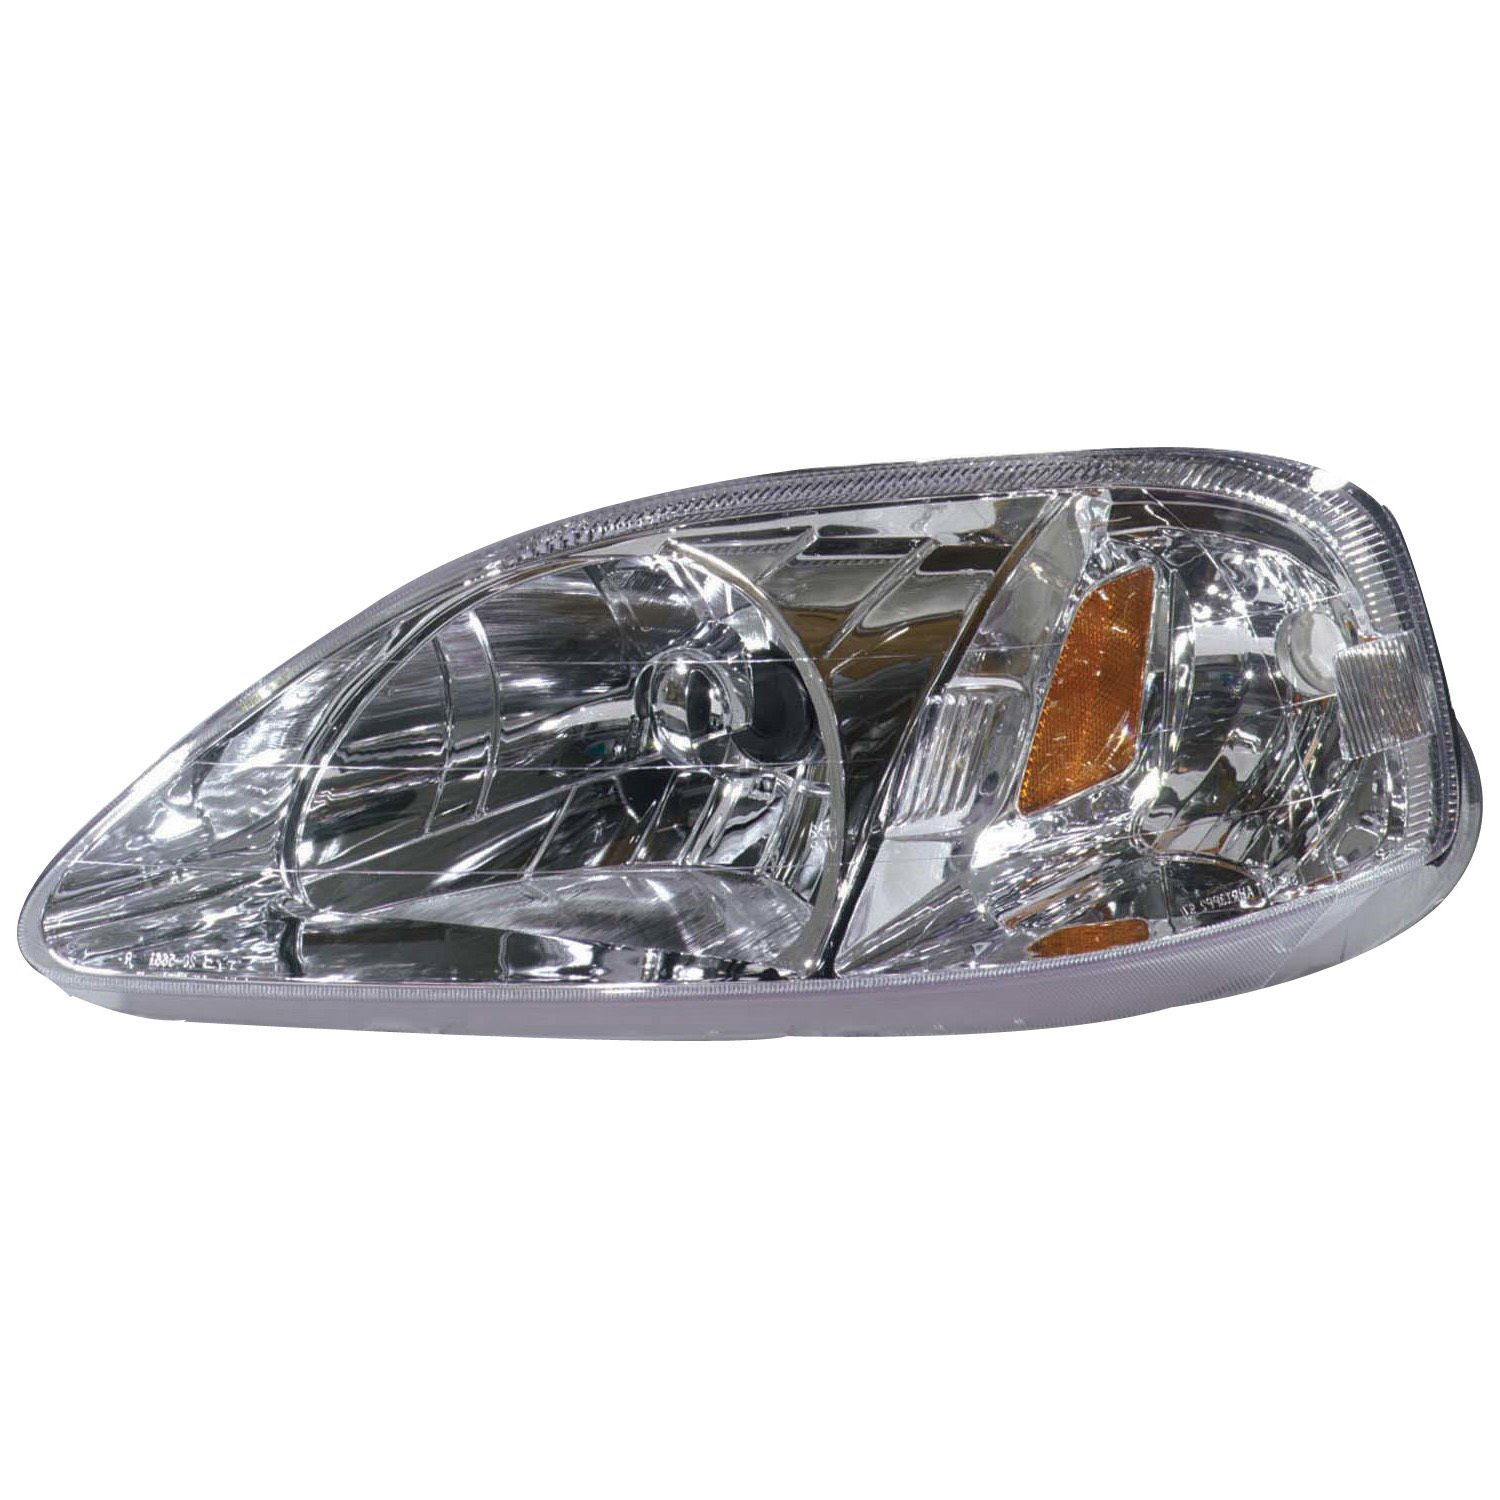 TYC 20-5661-01-9 Honda Civic CAPA Certified Replacement Right Head Lamp